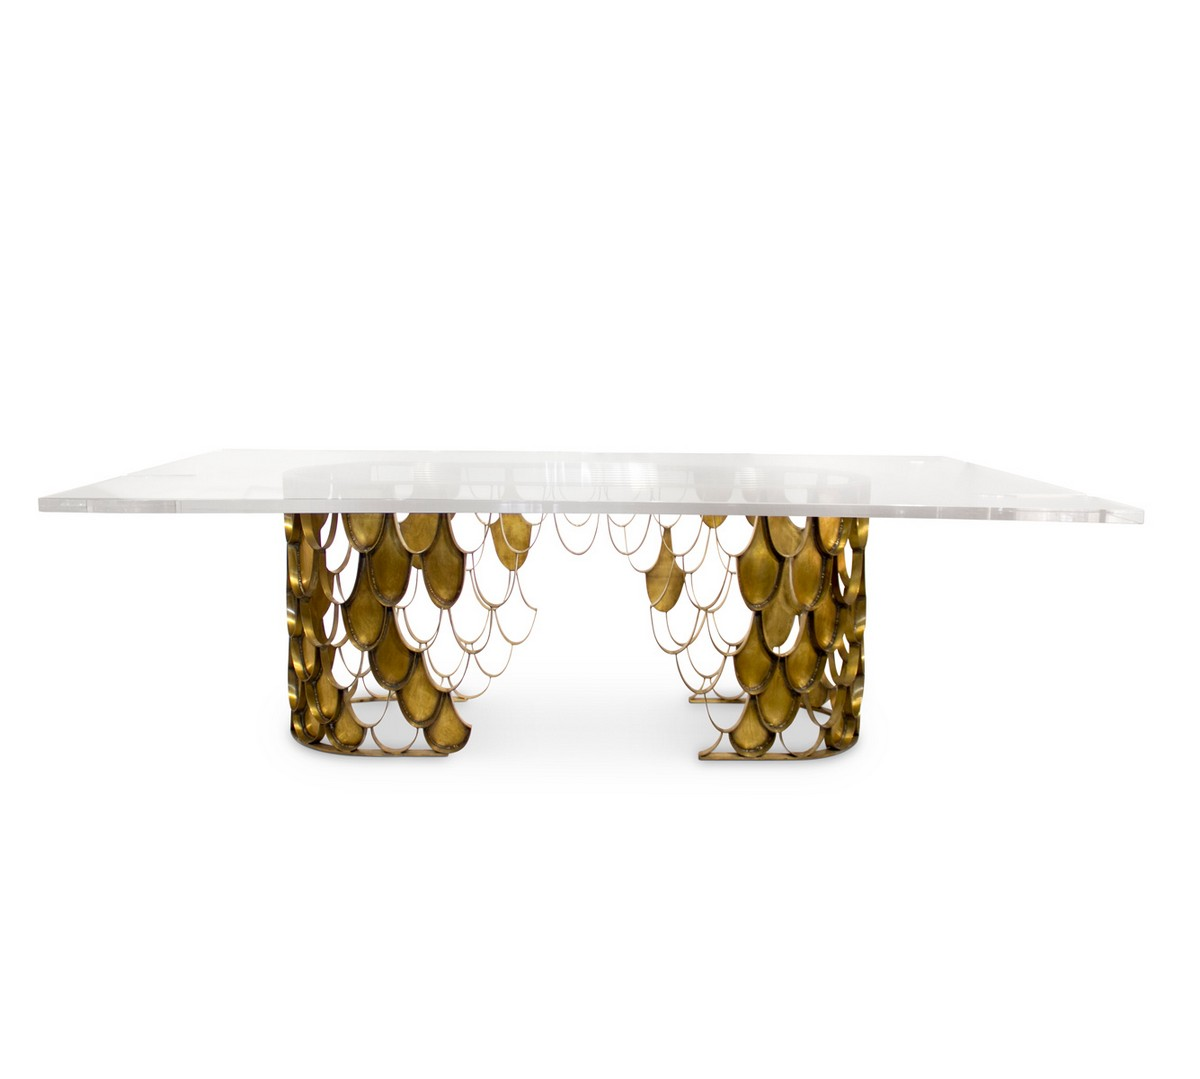 Top Bespoke Dining Tables (Part II) bespoke dining tables Top Bespoke Dining Tables (Part II) koi2